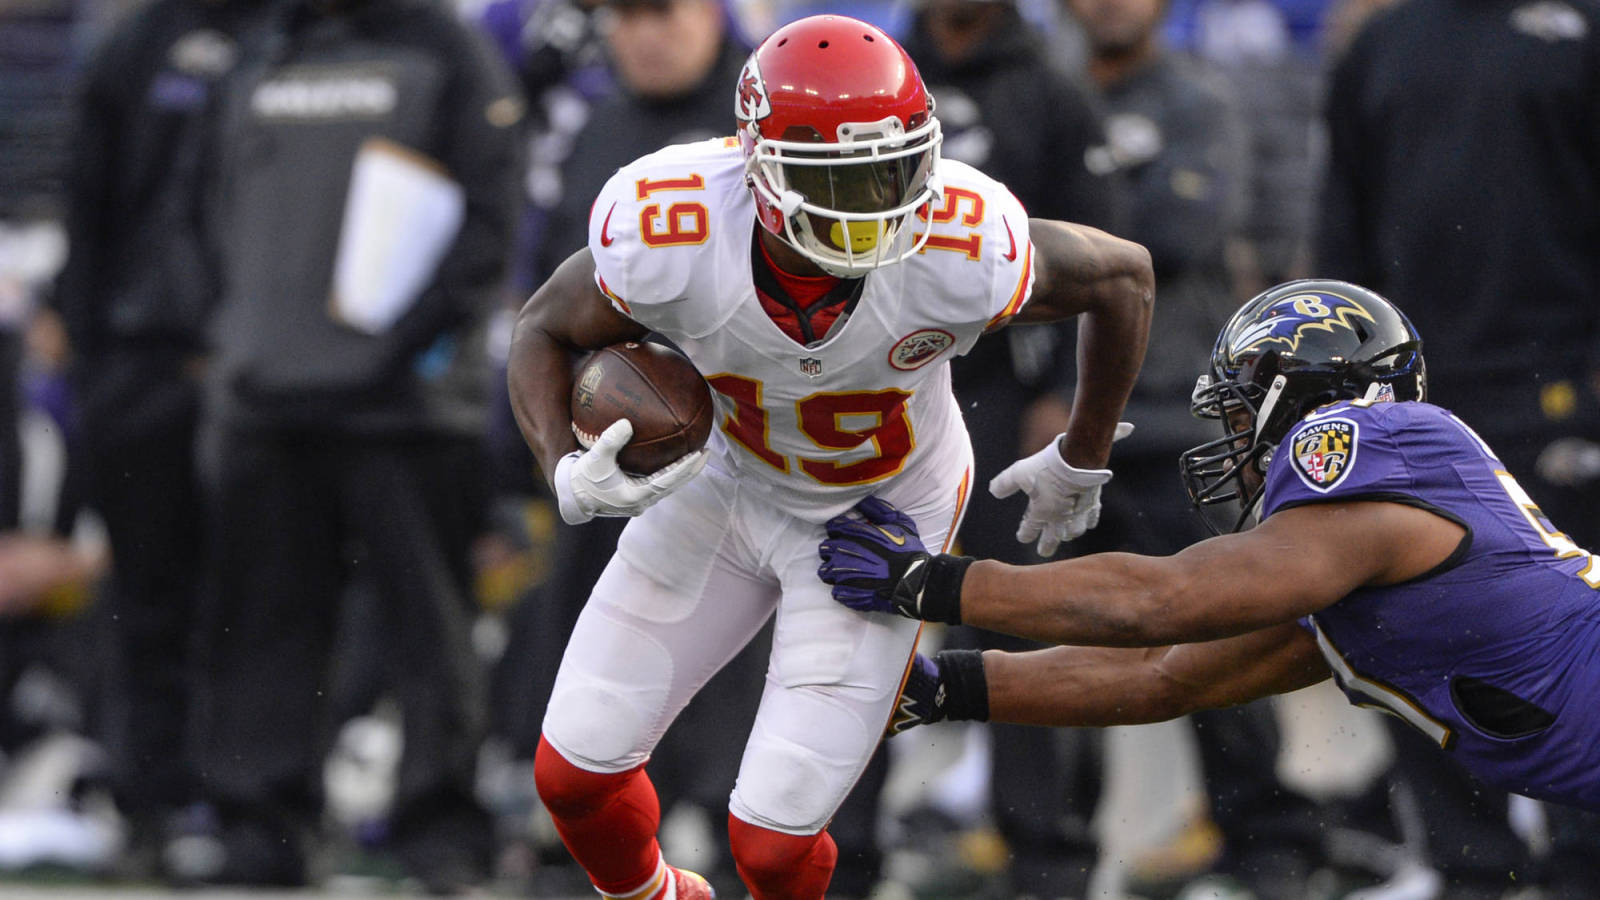 Jeremy Maclin takes advantage of free crab cake offer